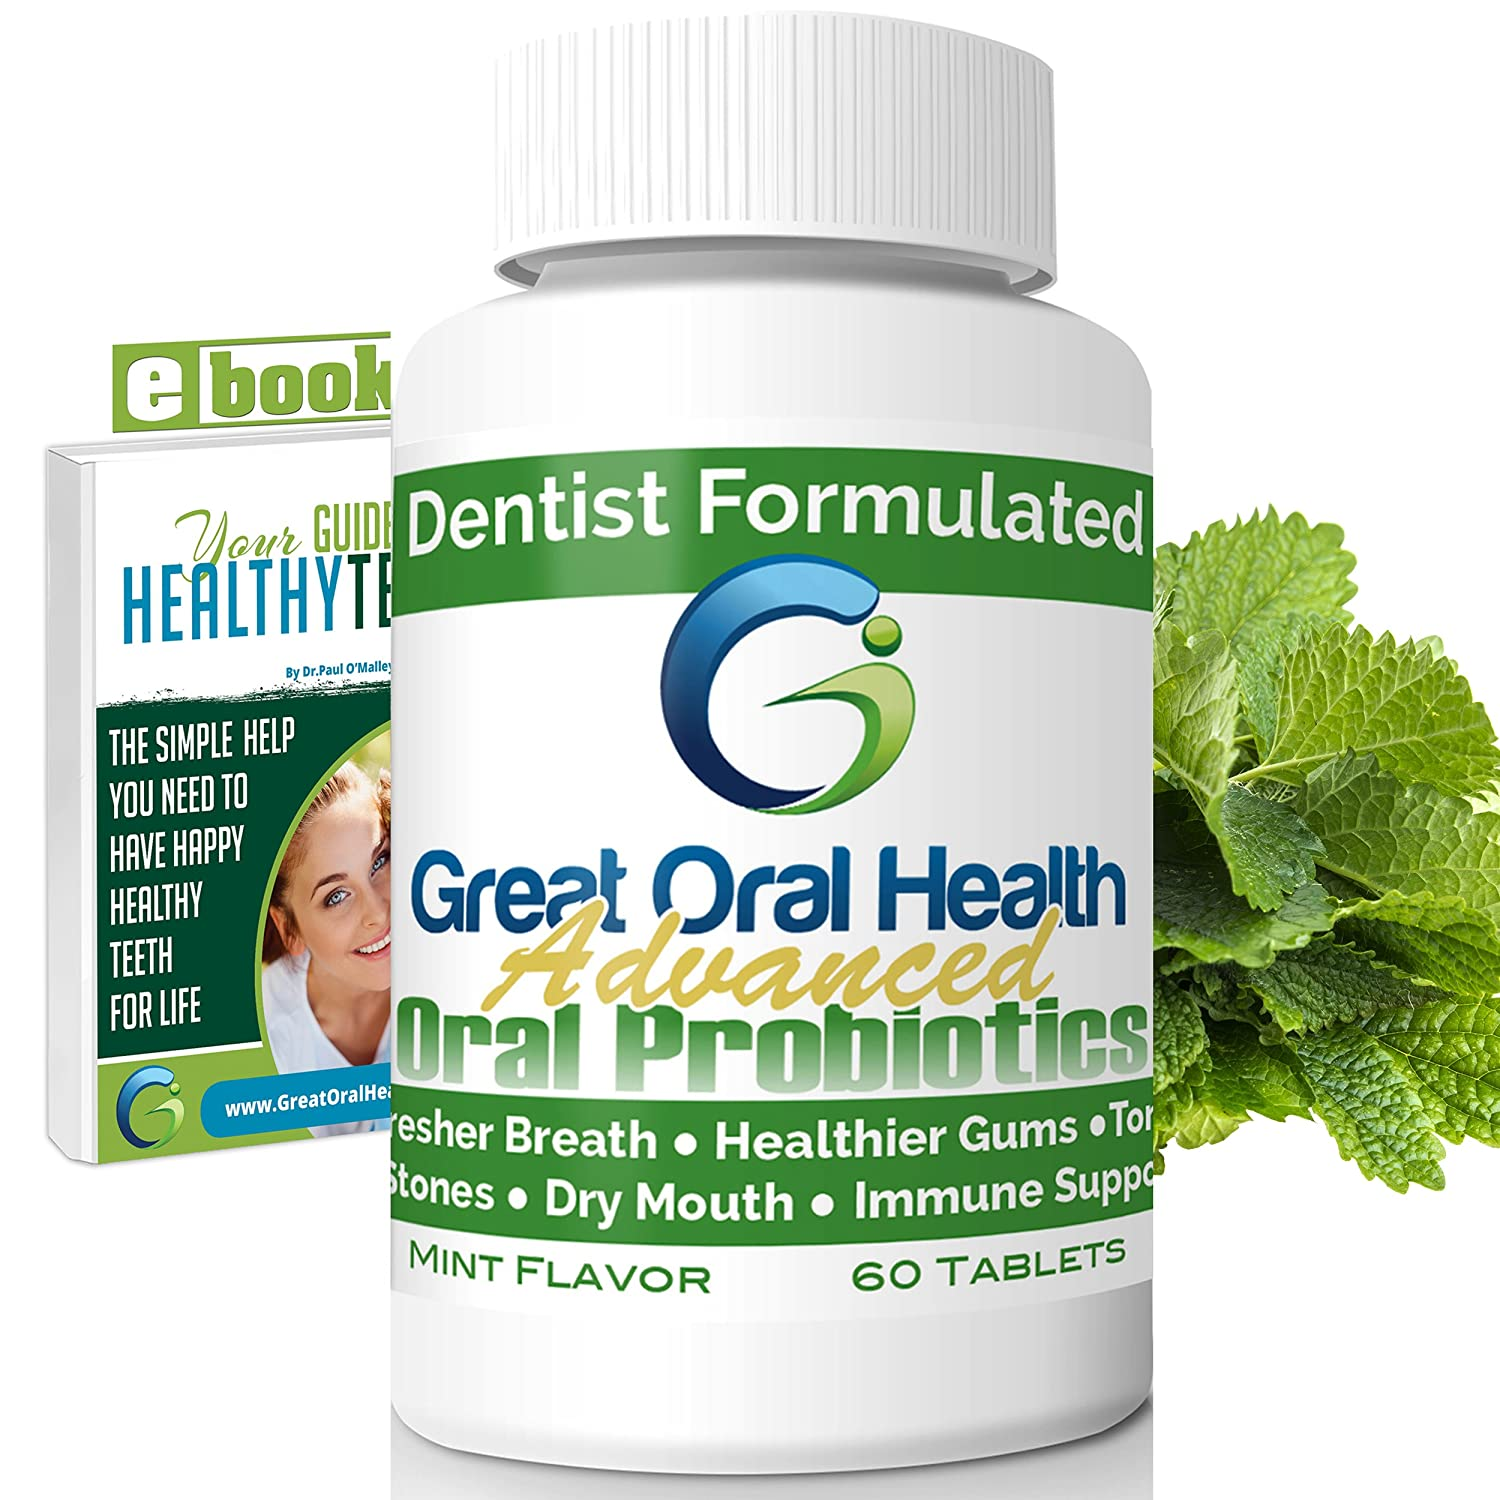 The Top Dentist Recommended Oral Probiotic: Great for Bad Breath, Halitosis, Gum Treatment, Immune Support, Tonsil Stones & Dry Mouth. ALL NATURAL INGREDIENTS-GLUTEN AND LACTOSE FREE. Contains a potent probiotic blend of beneficial bacteria; Great Oral